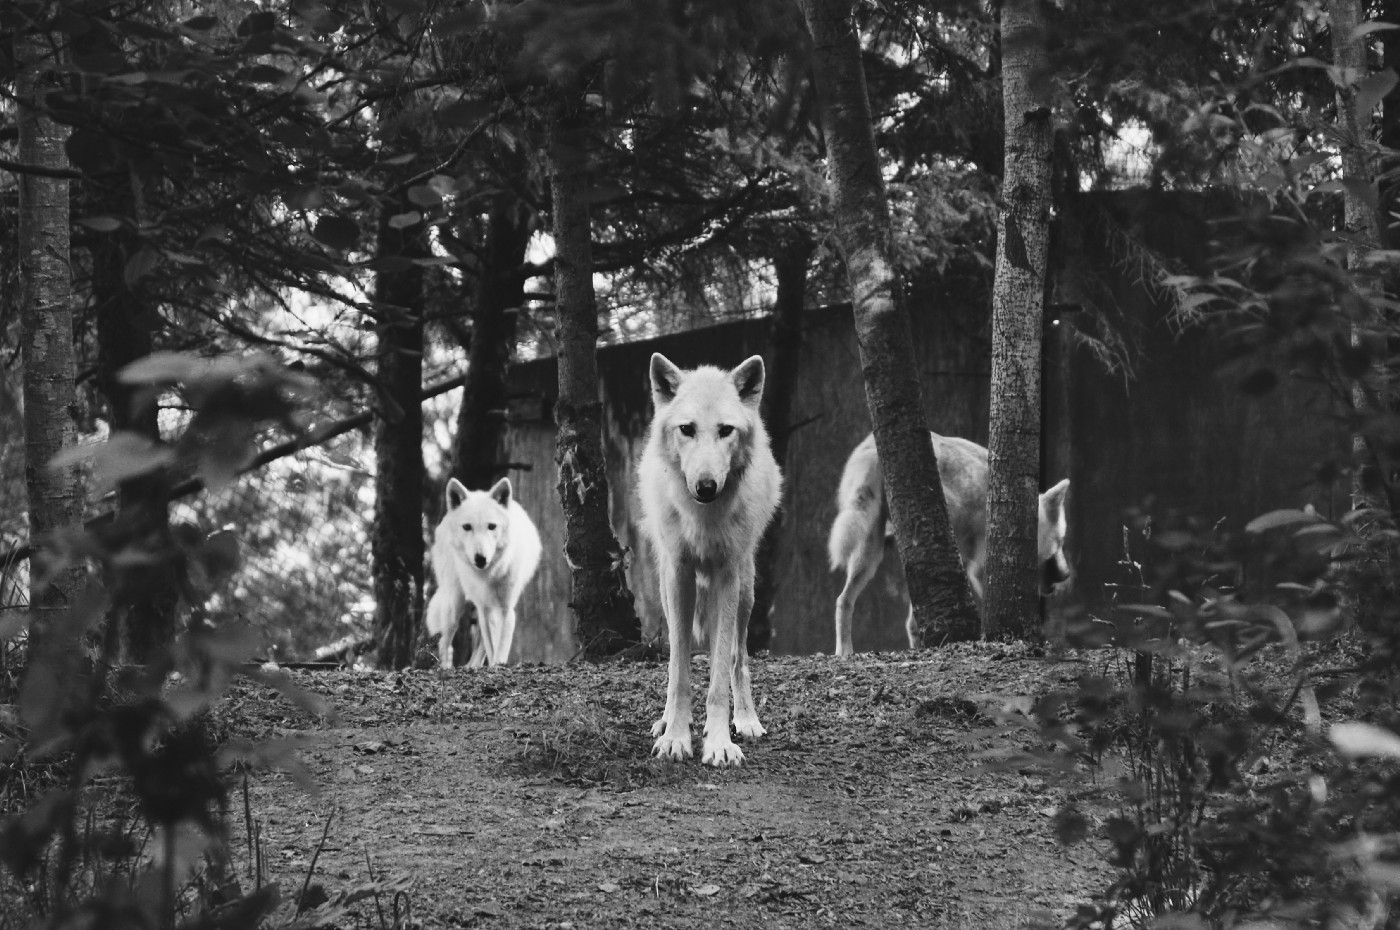 A head white wolf leading the pack facing you from the forest as if threatening to approach.